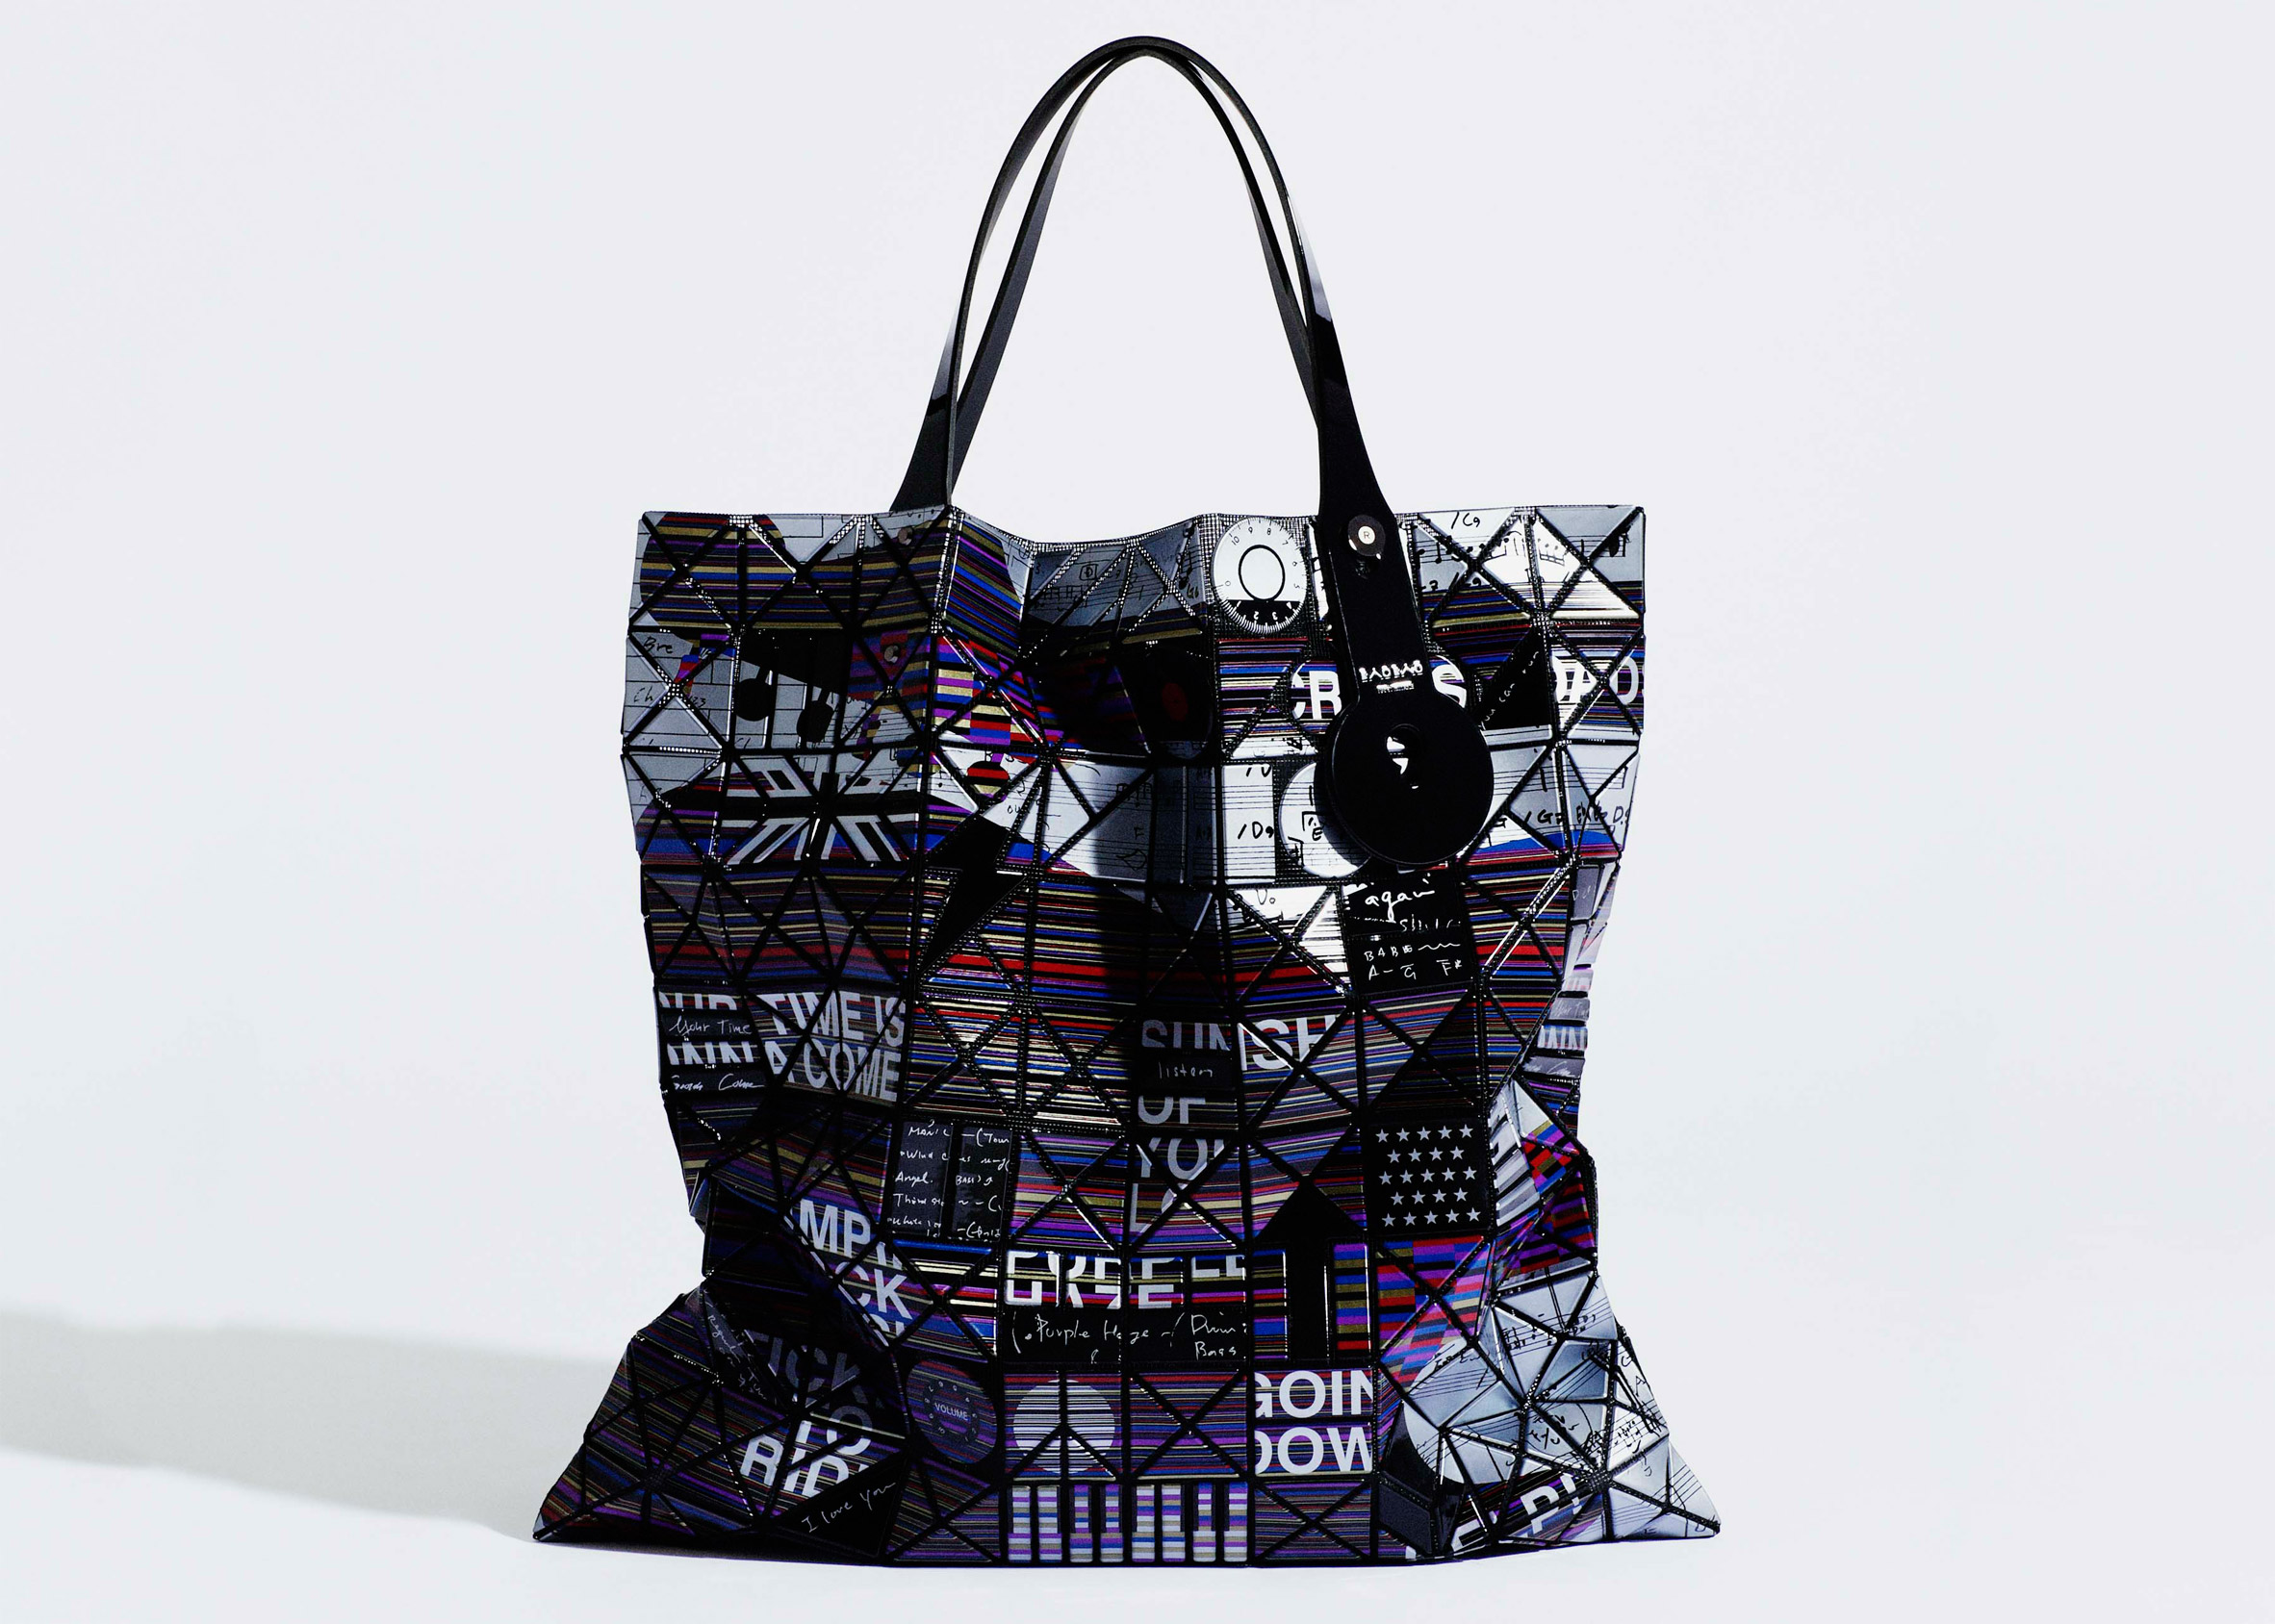 d53740fd37 Issey Miyake updates iconic Bao Bao bag with new shapes